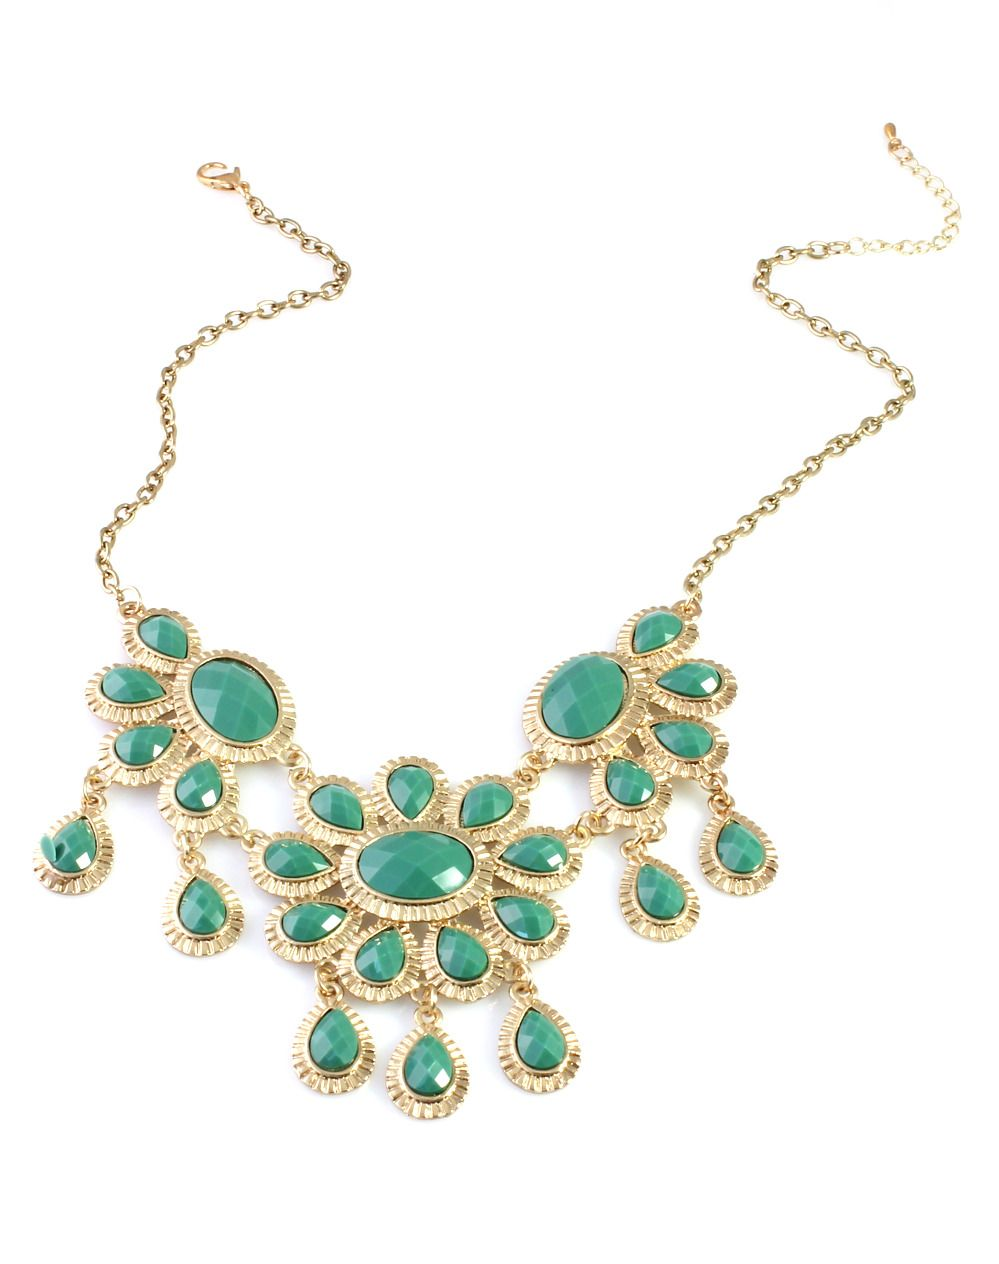 Elegant bib necklace featuring faceted gemstones in floral motif, framed by golden finery. Made luxe by the teardrop fringe, this necklace will add plenty of glam to your casual outfits.Item Details:Pendant: 2.95in * 5.12inLength: 16